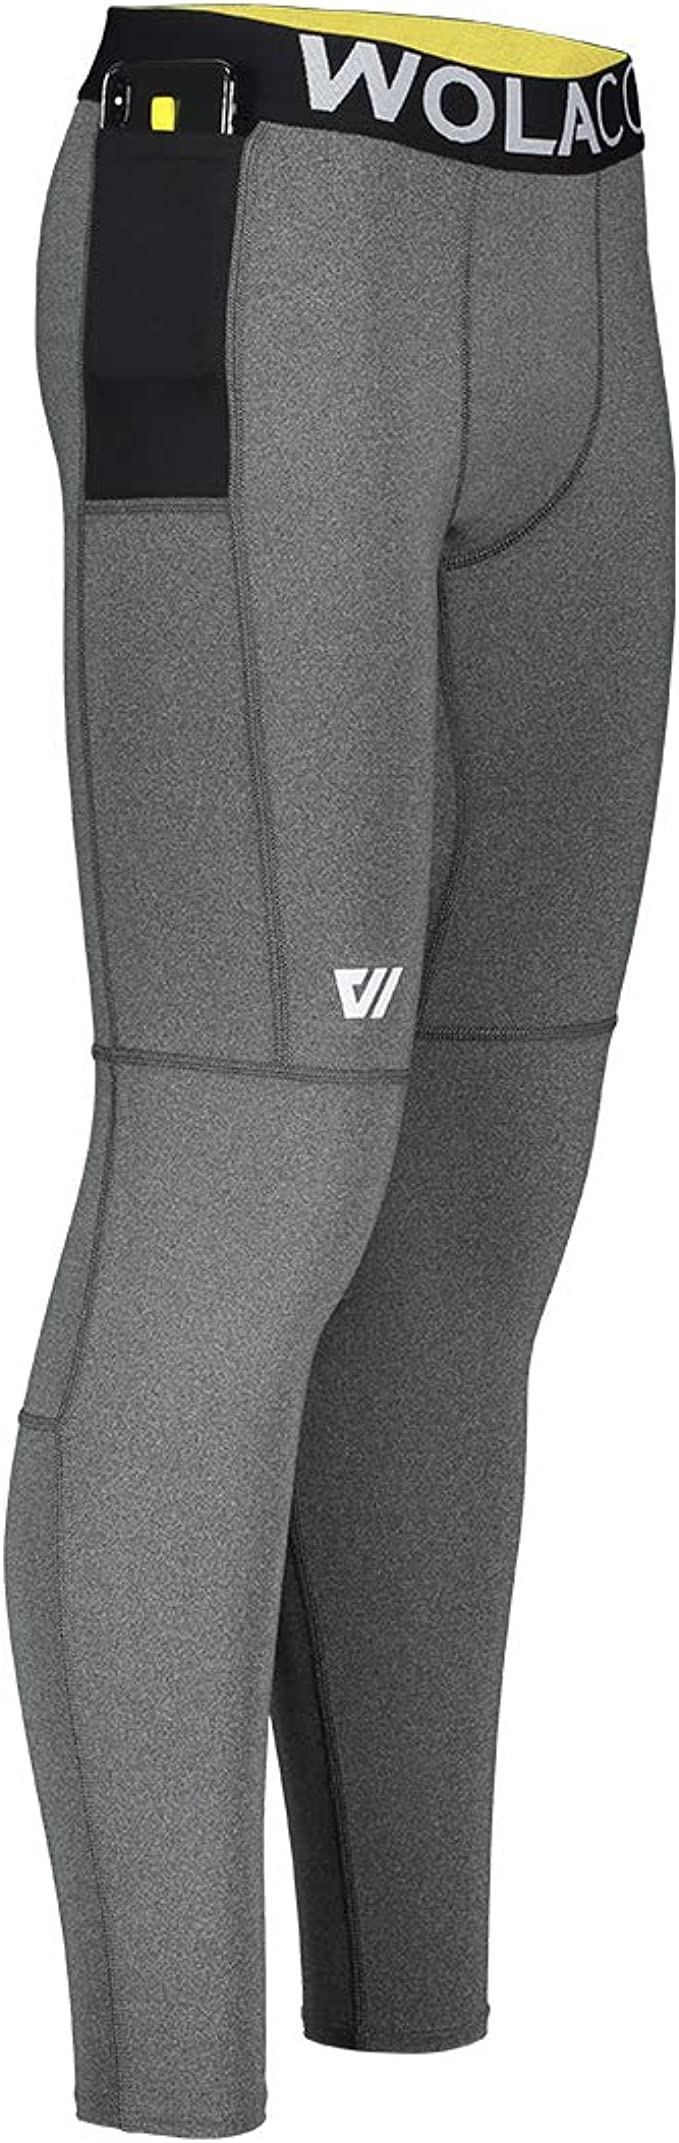 Compact Sports Activewear Made in America WOLACO Fulton Full Length Compression Pants